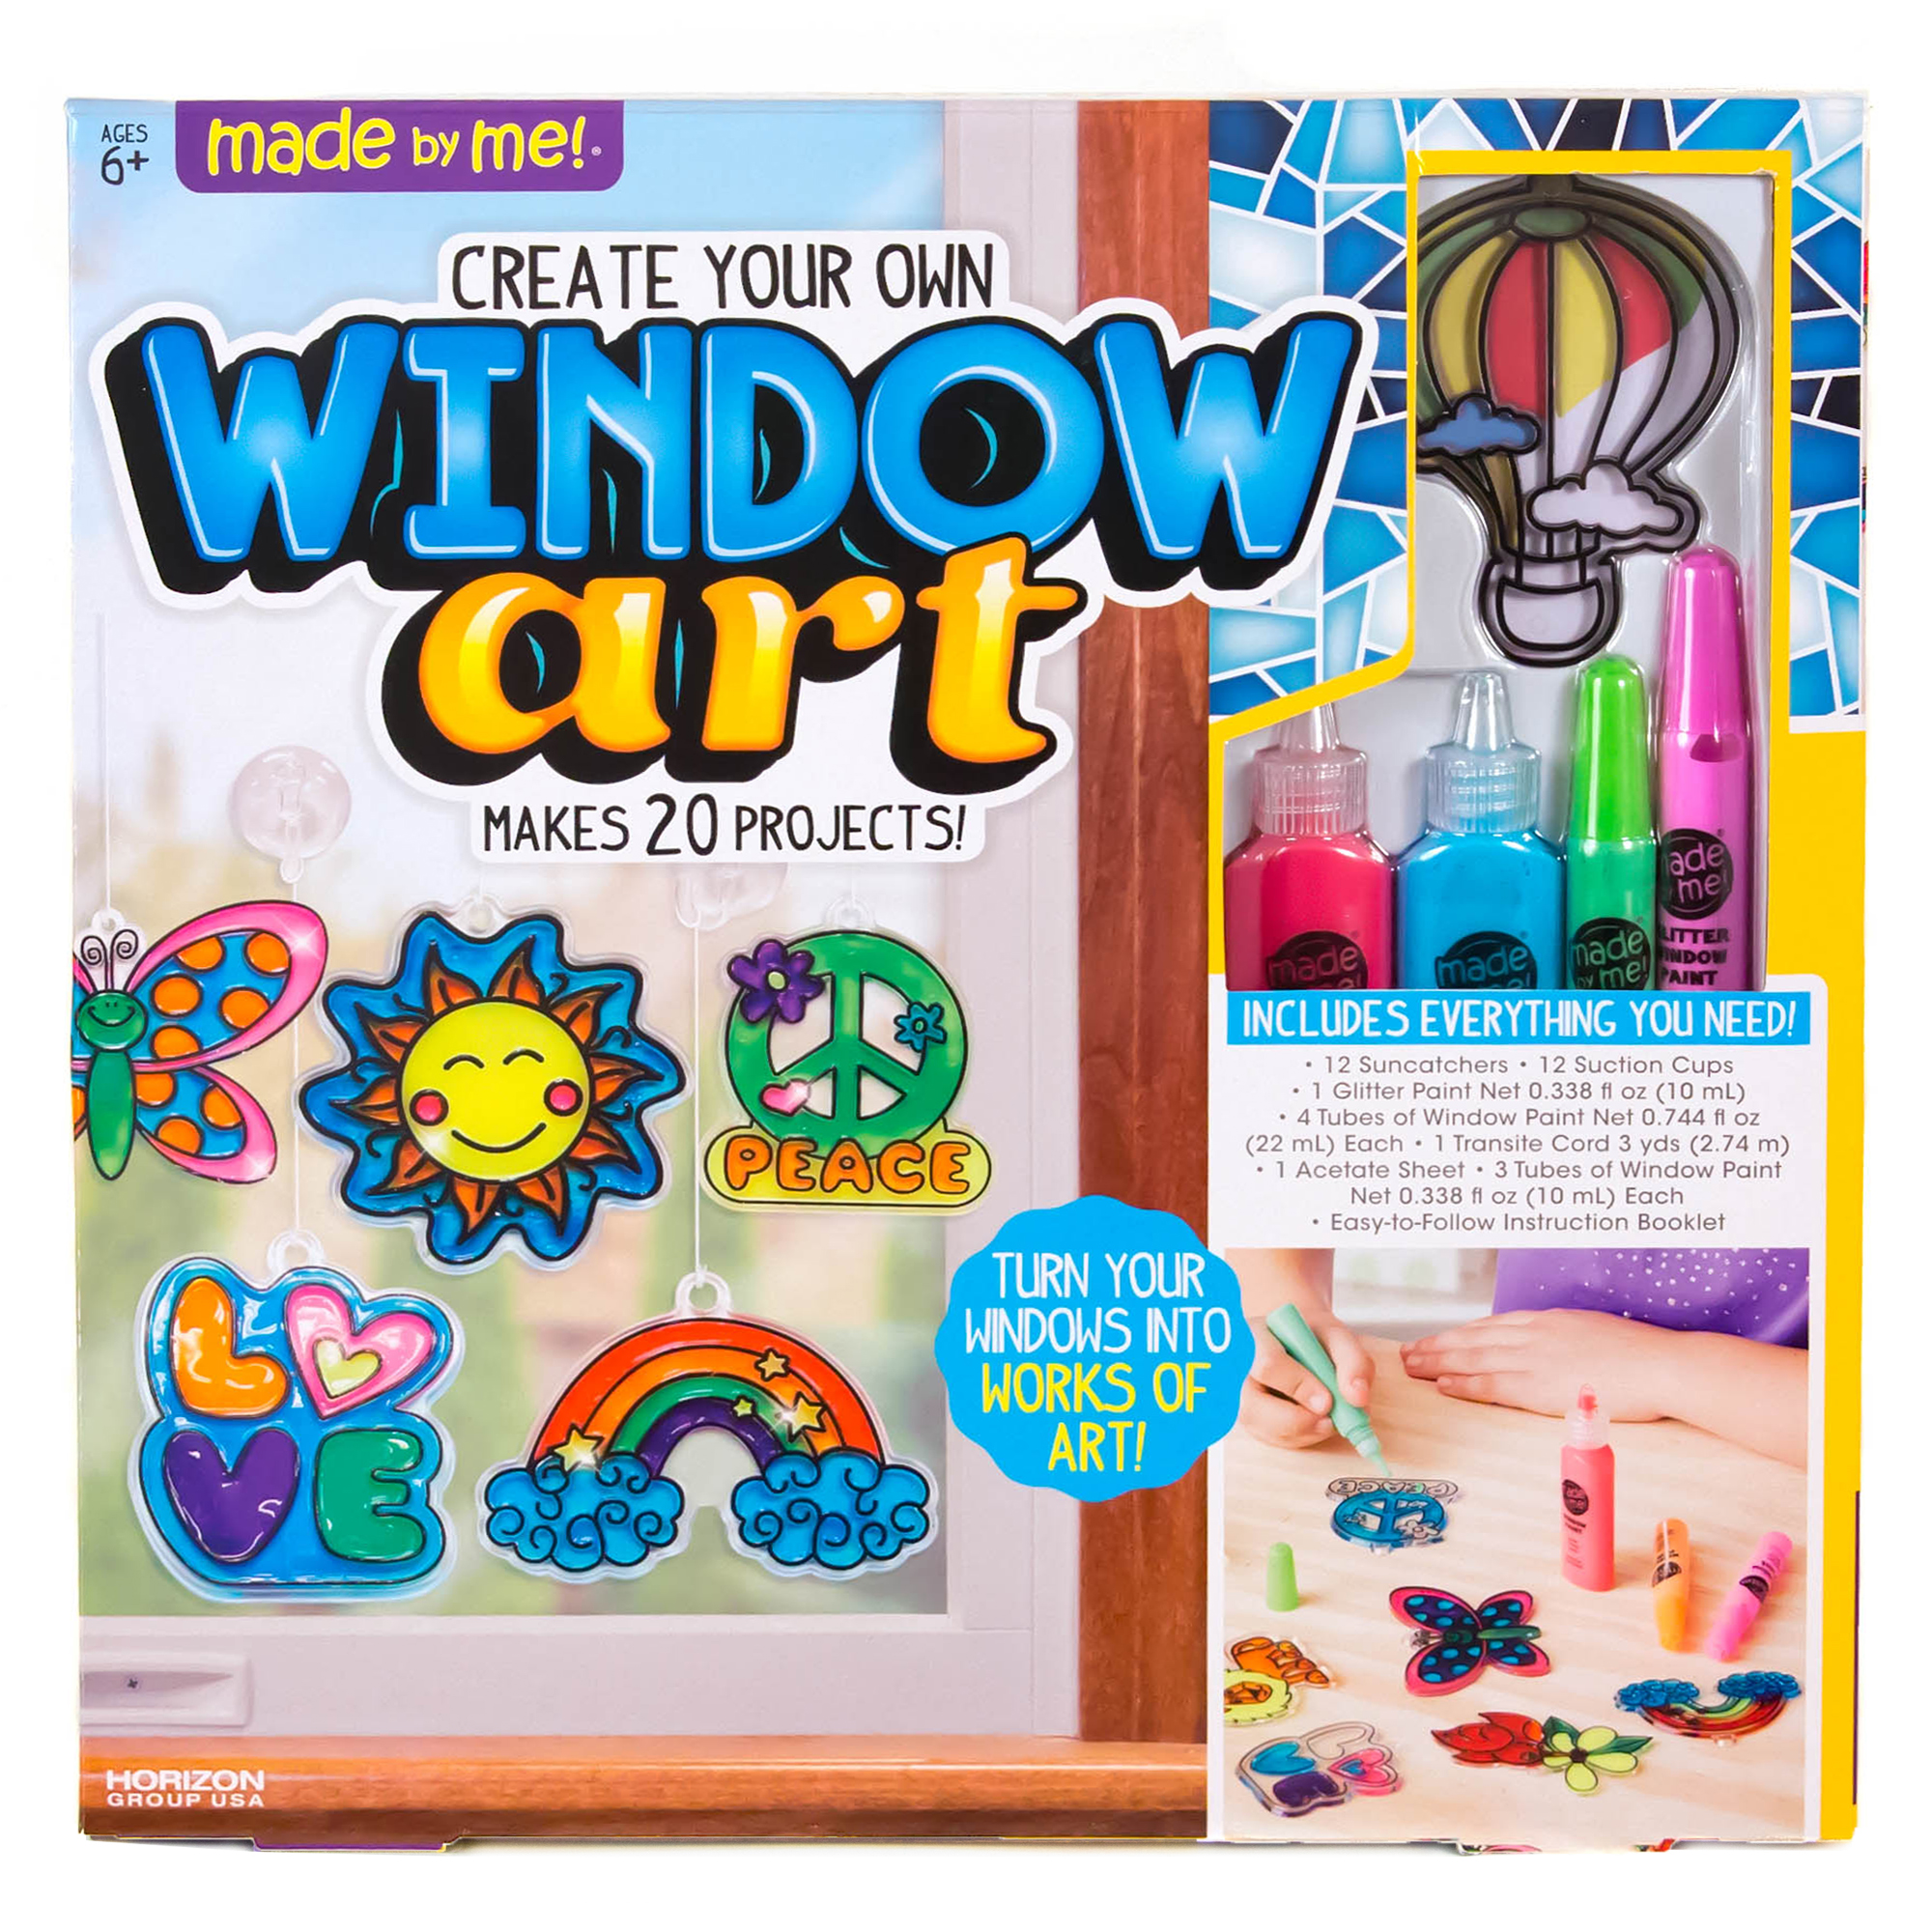 Made by Me Window Art Activity Kit by Horizon Group USA